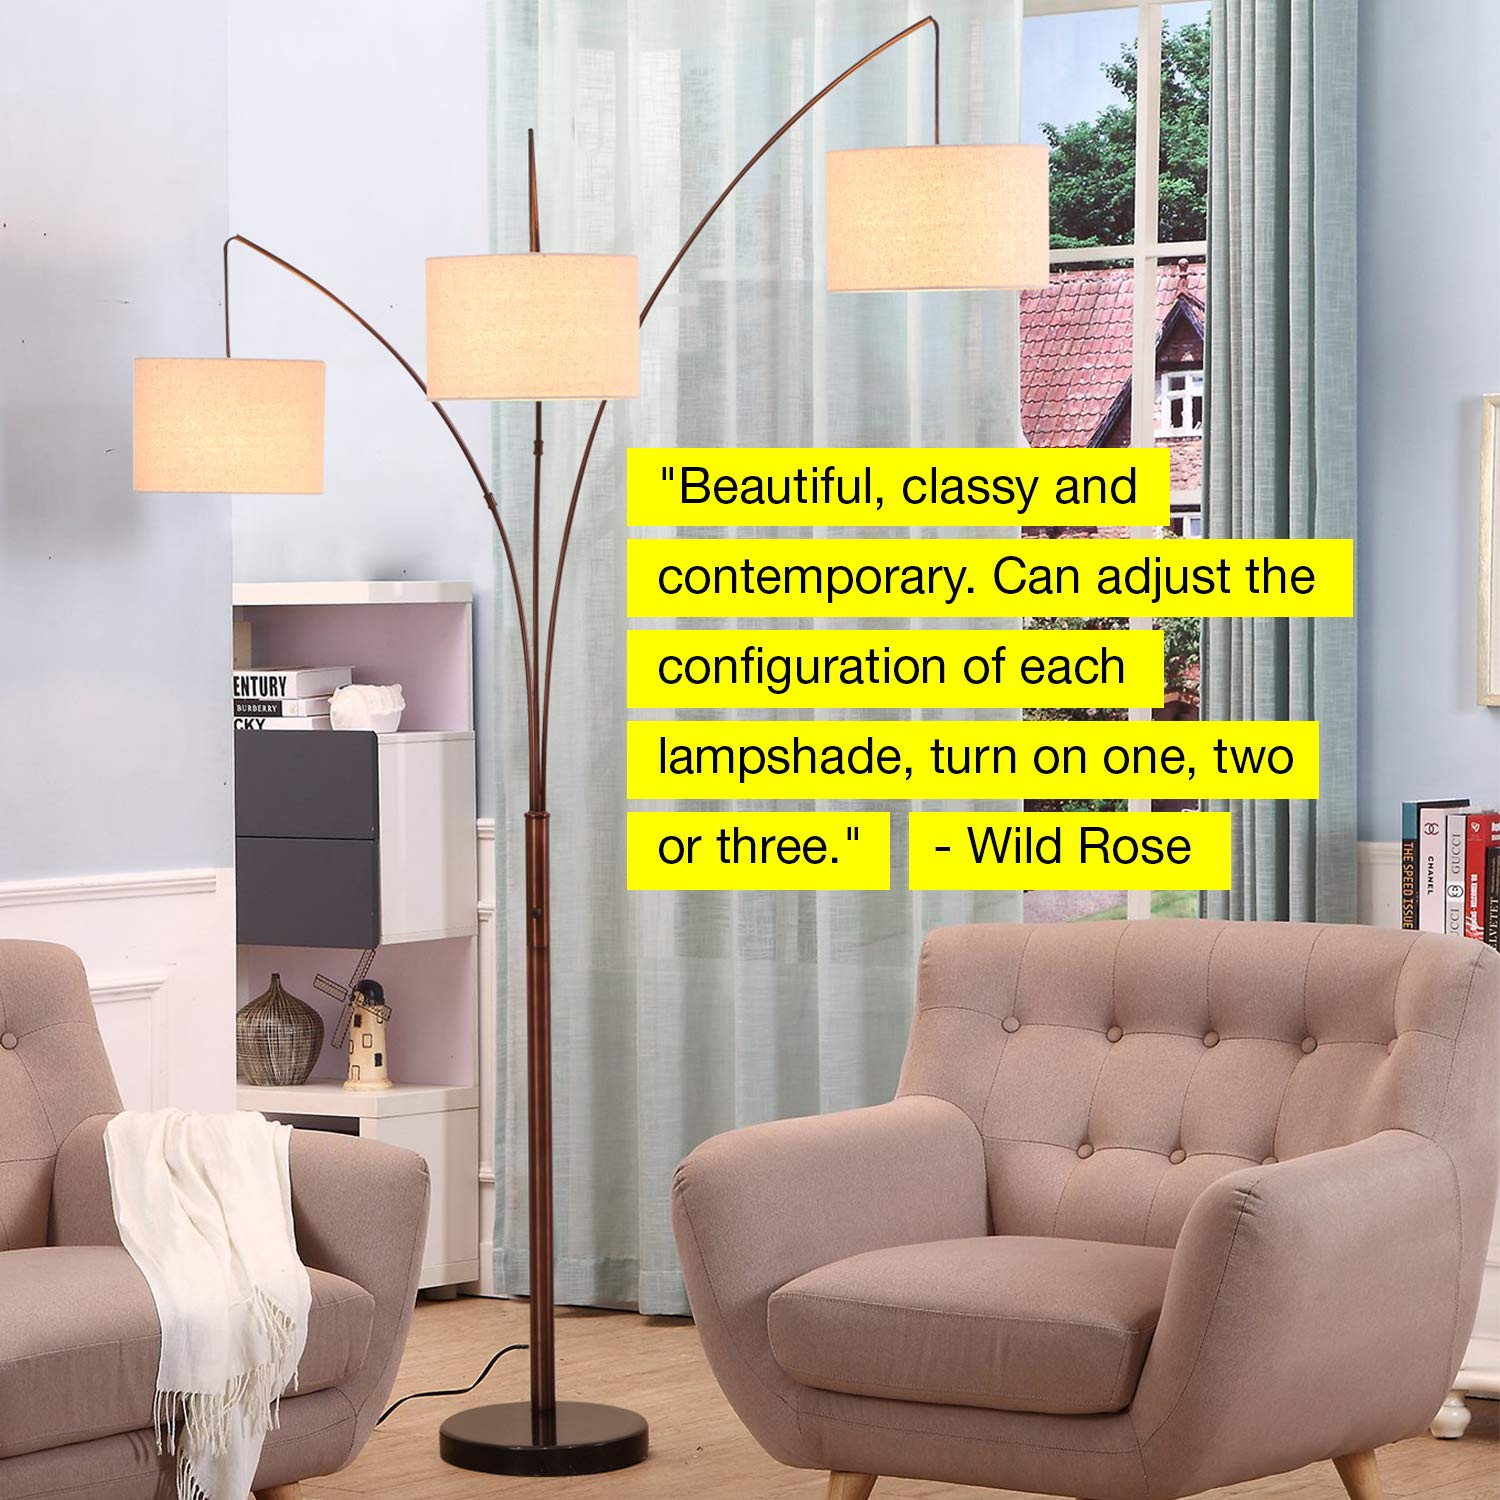 Brightech Trilage - Modern LED Arc Floor Lamp with Marble Base - Free Standing Behind The Couch Lamp for Living Room - 3 Hanging Lights, Great for Reading - Oil Rubbed Bronze by Brightech (Image #9)